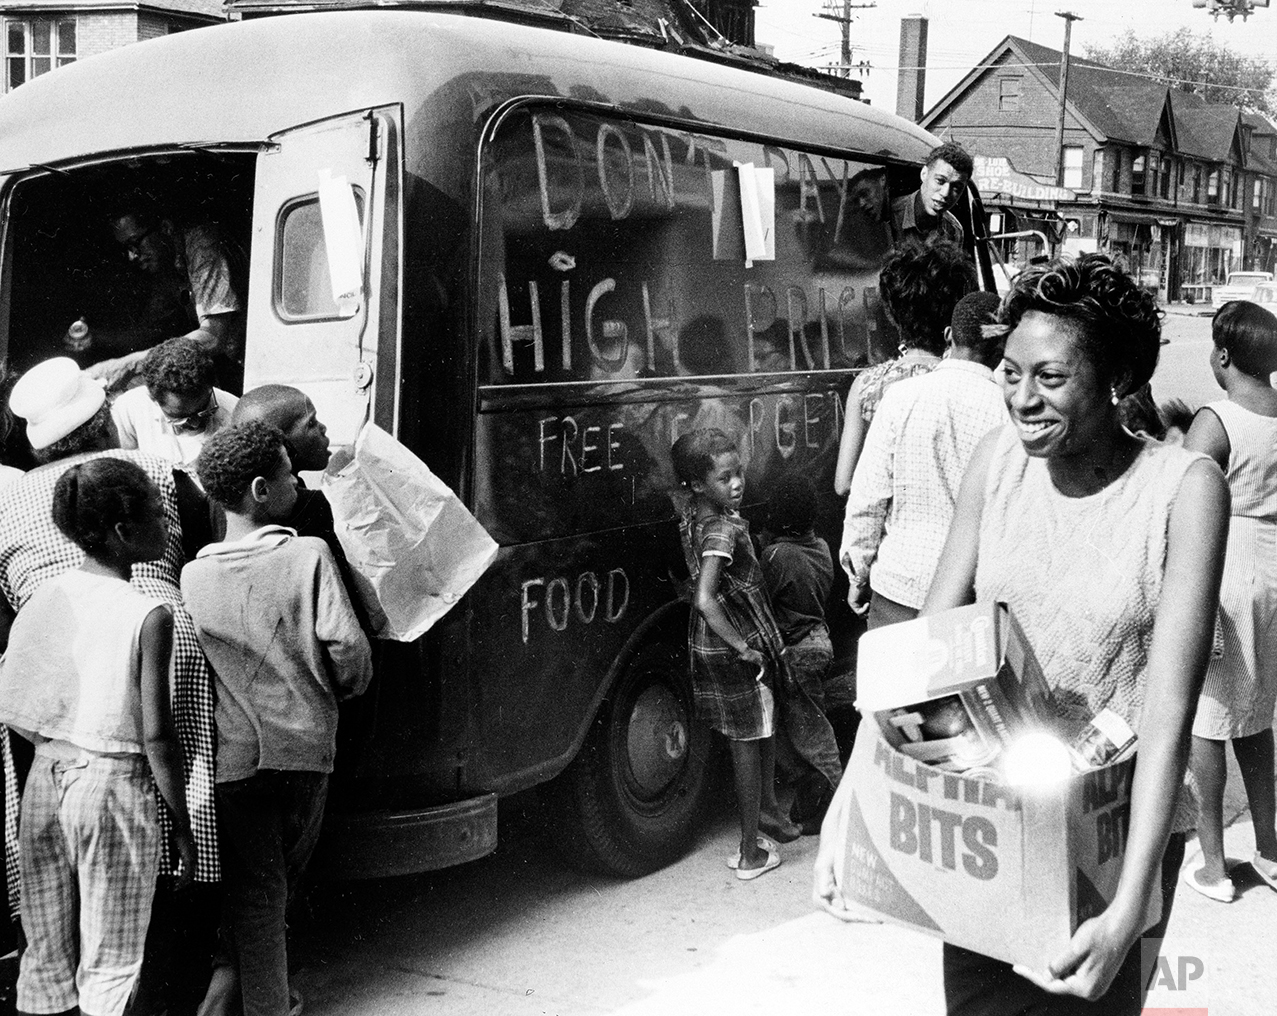 """People gather around a truck to get free food on Detroit's east side, July 27, 1967. The food was brought to the riot-stricken area by the Crisis Council, one of the many organizations aiding residents. Sign on the side of the truck reads """"Don't pay high prices - free emergency food.""""(AP Photo)"""